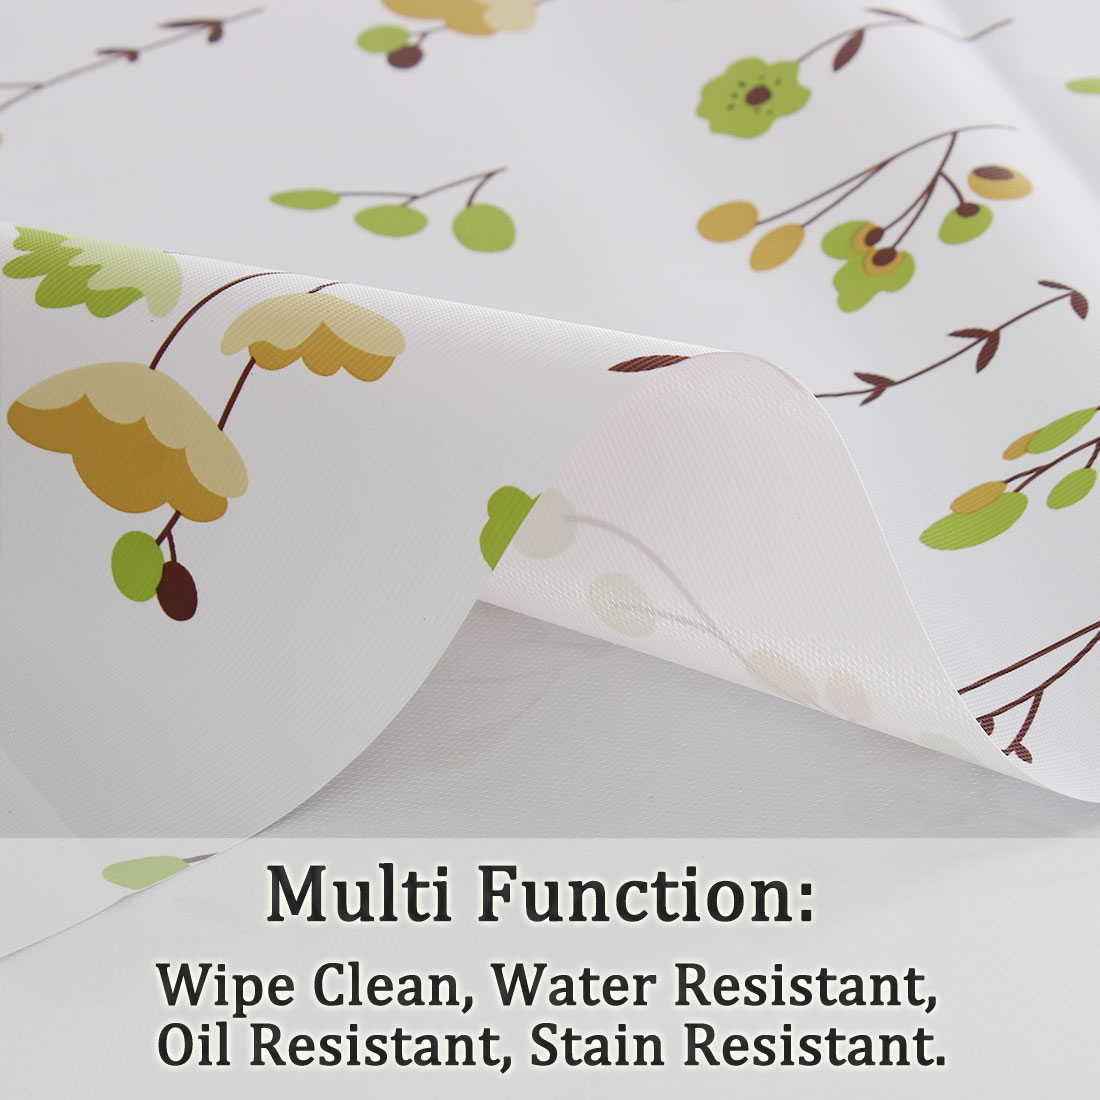 "Tablecloth PVC Vinyl Table Cover Oil Water Resistant Table Cloth 54"" x 55"", #1 - image 3 de 7"